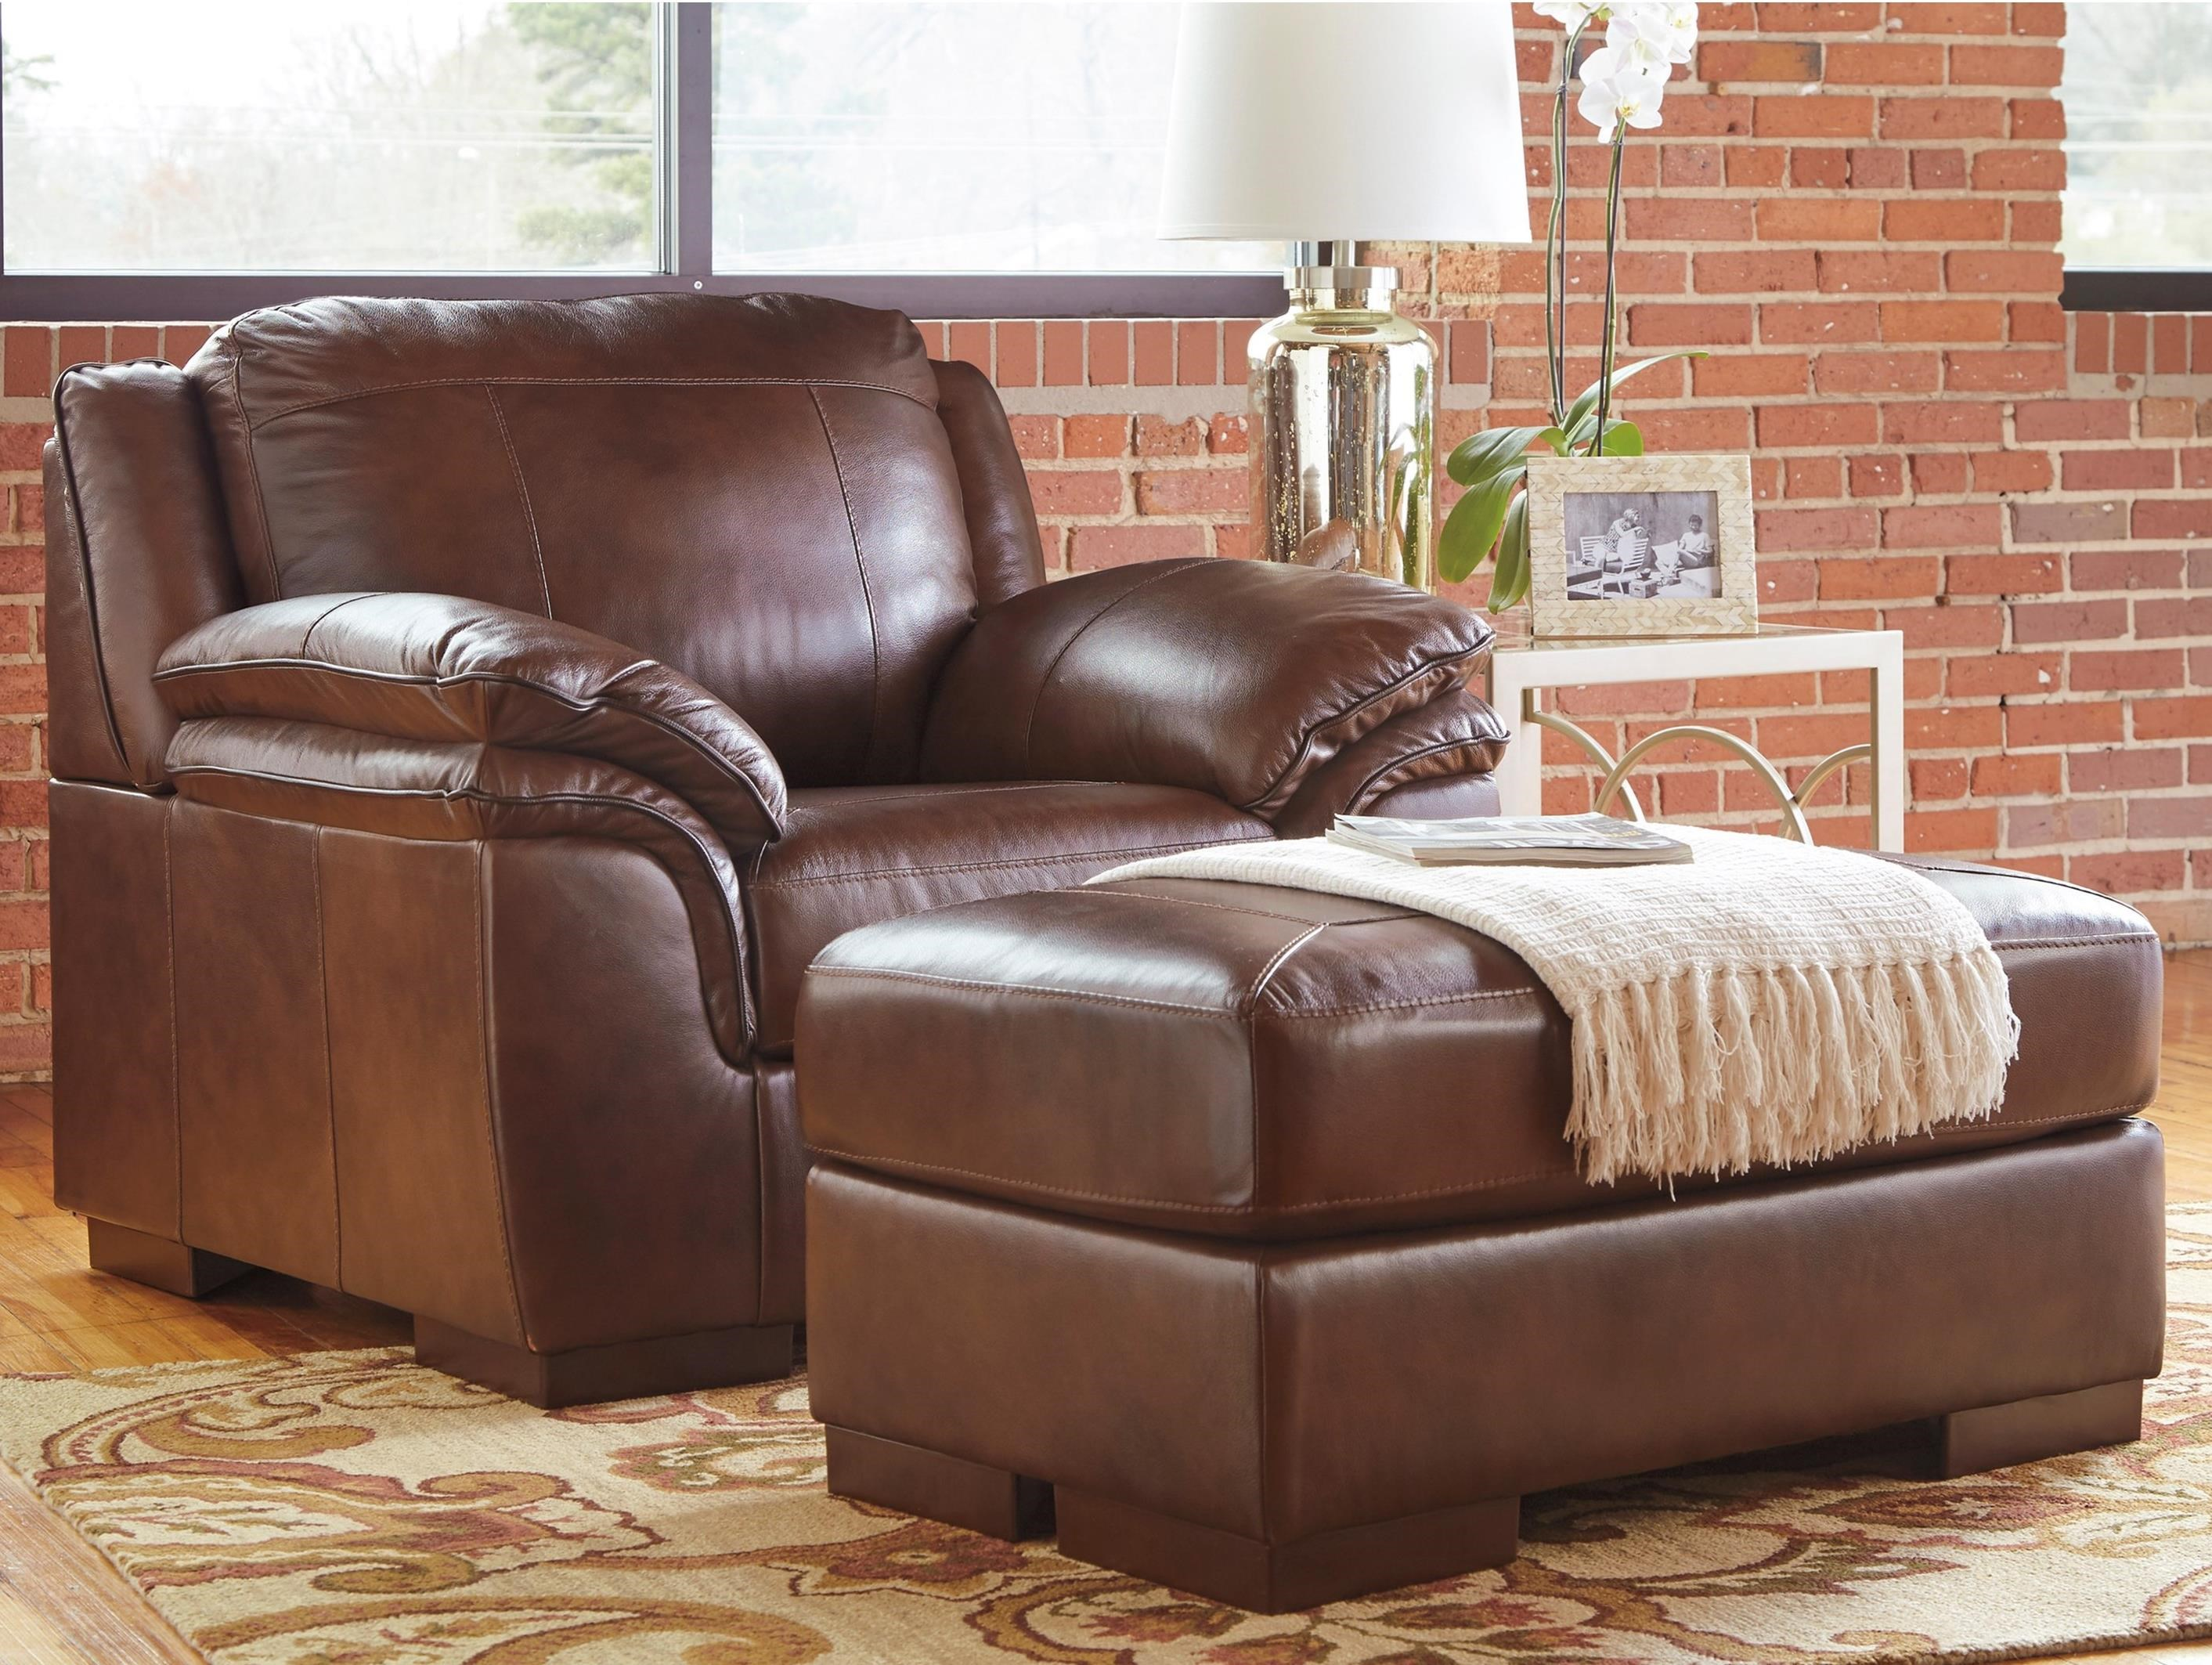 Signature Design By Ashley Islebrook Contemporary Leather